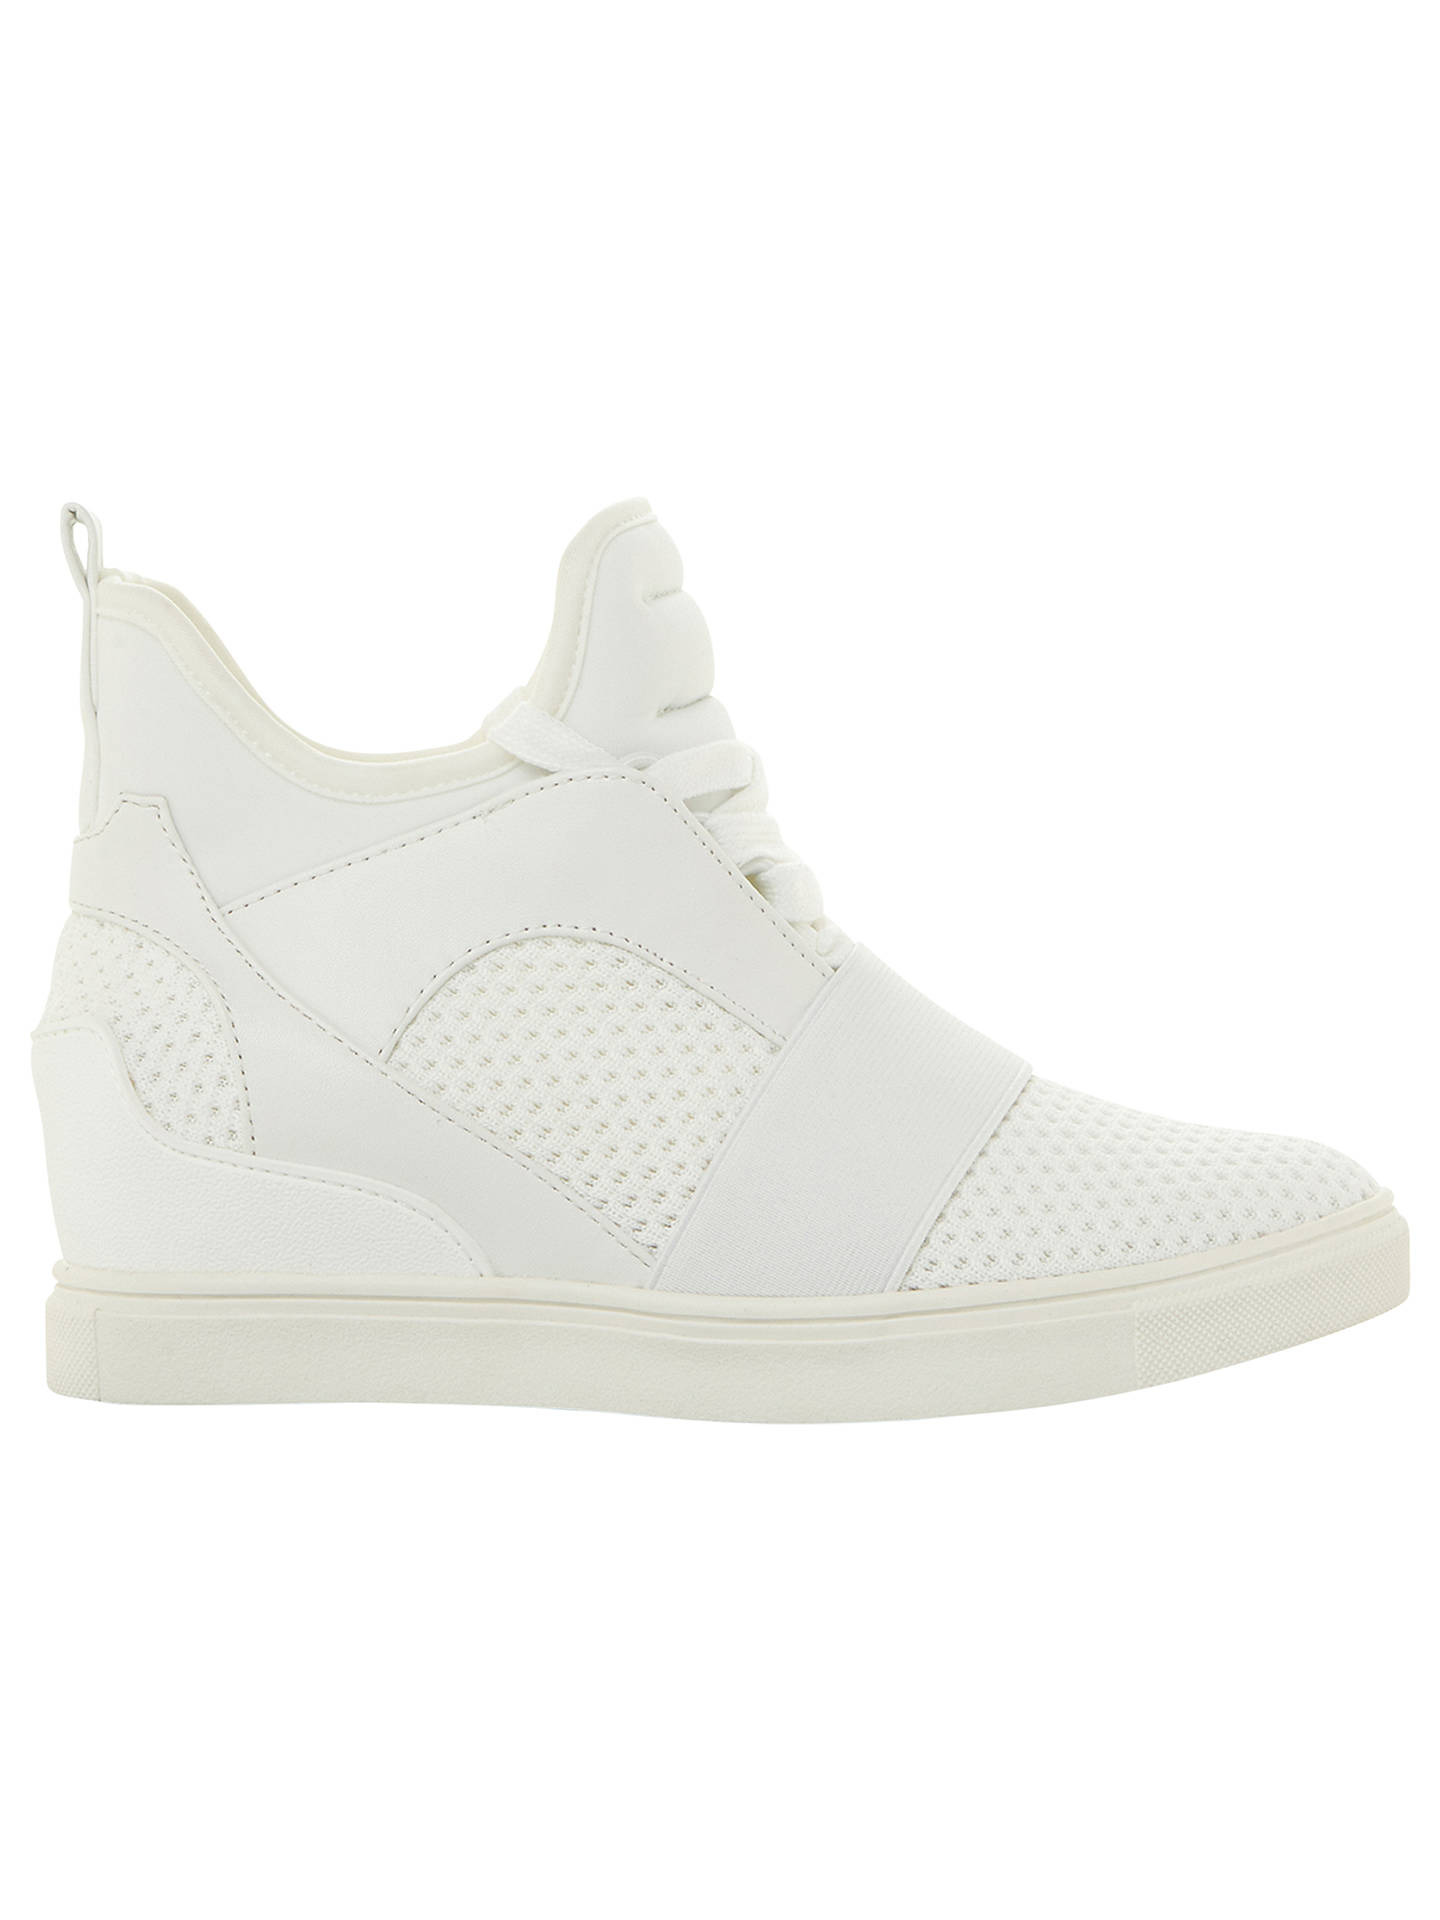 877f7429430 Steve Madden Lexi Concealed Wedge Trainers at John Lewis   Partners